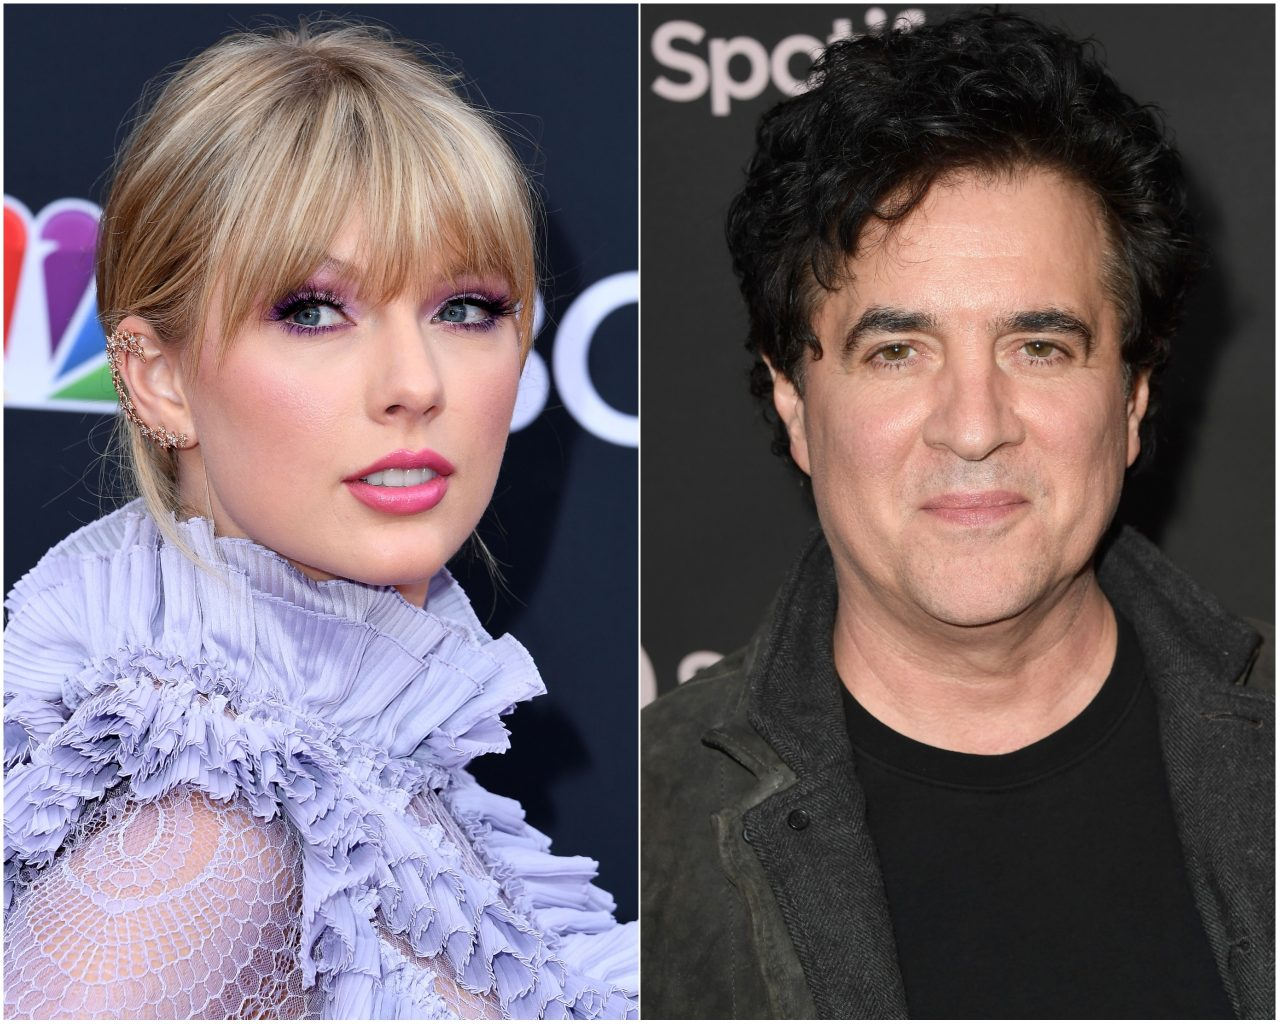 Taylor Swift, Scott Borchetta and More Battle Over Record Label Sale